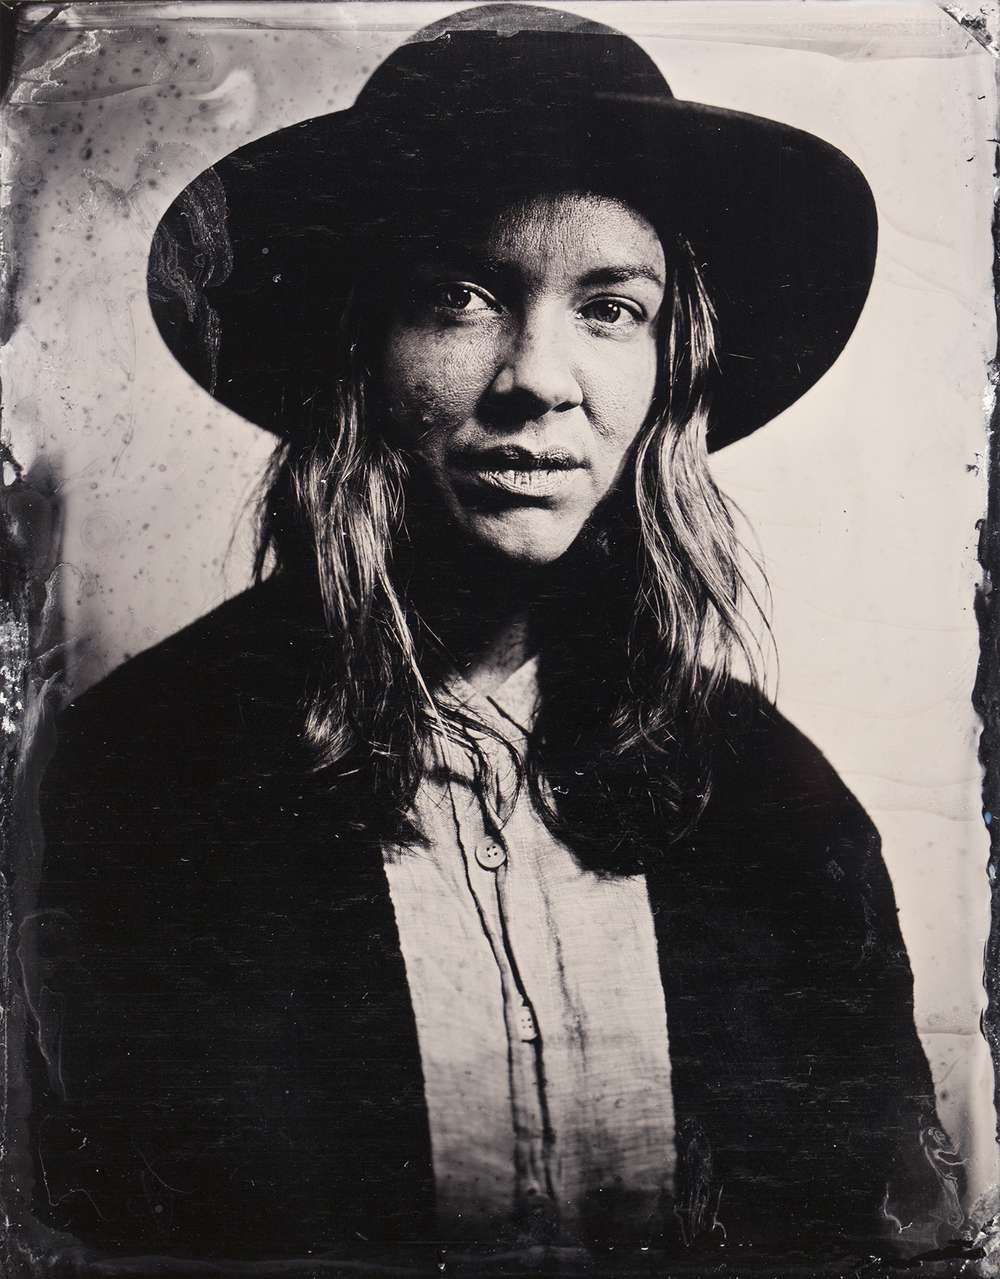 Tin Type , Chris Parsons , Tin Crown Photo , Tin Crown , New York City , Wet Plate Photography , Portraits , Chris Parsons Photography